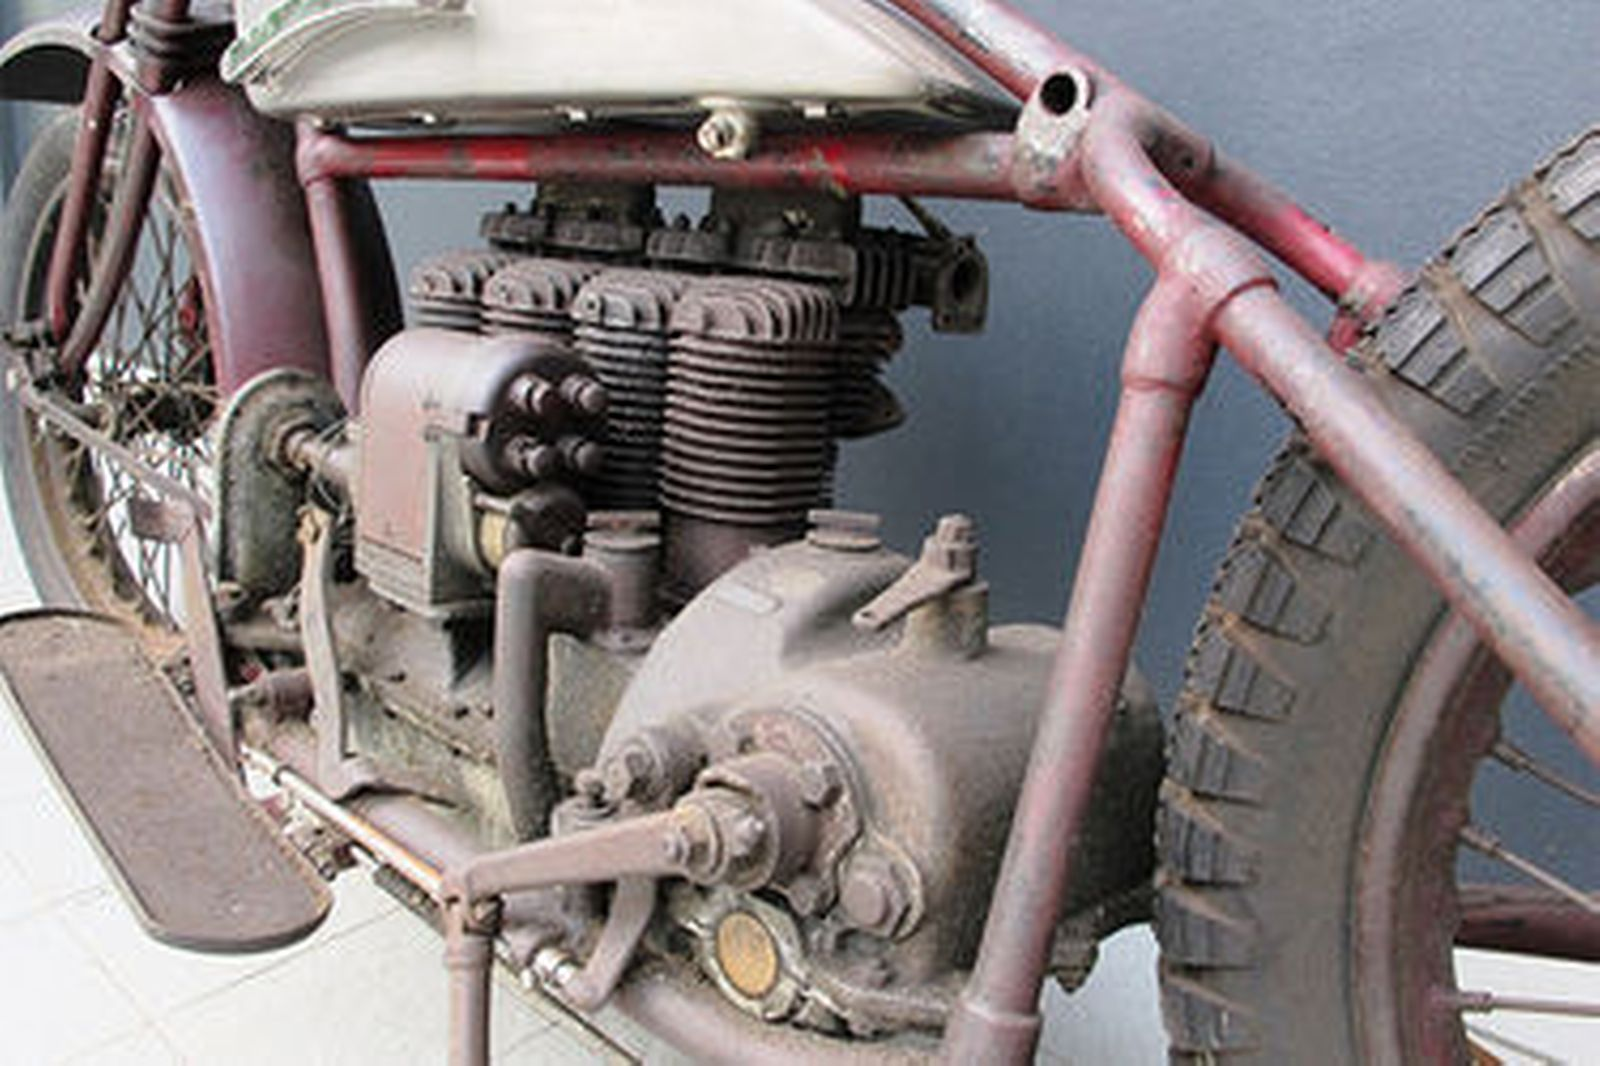 Ace 75ci (1230cc) Motorcycle 4-Cylinder In-Line (Project)